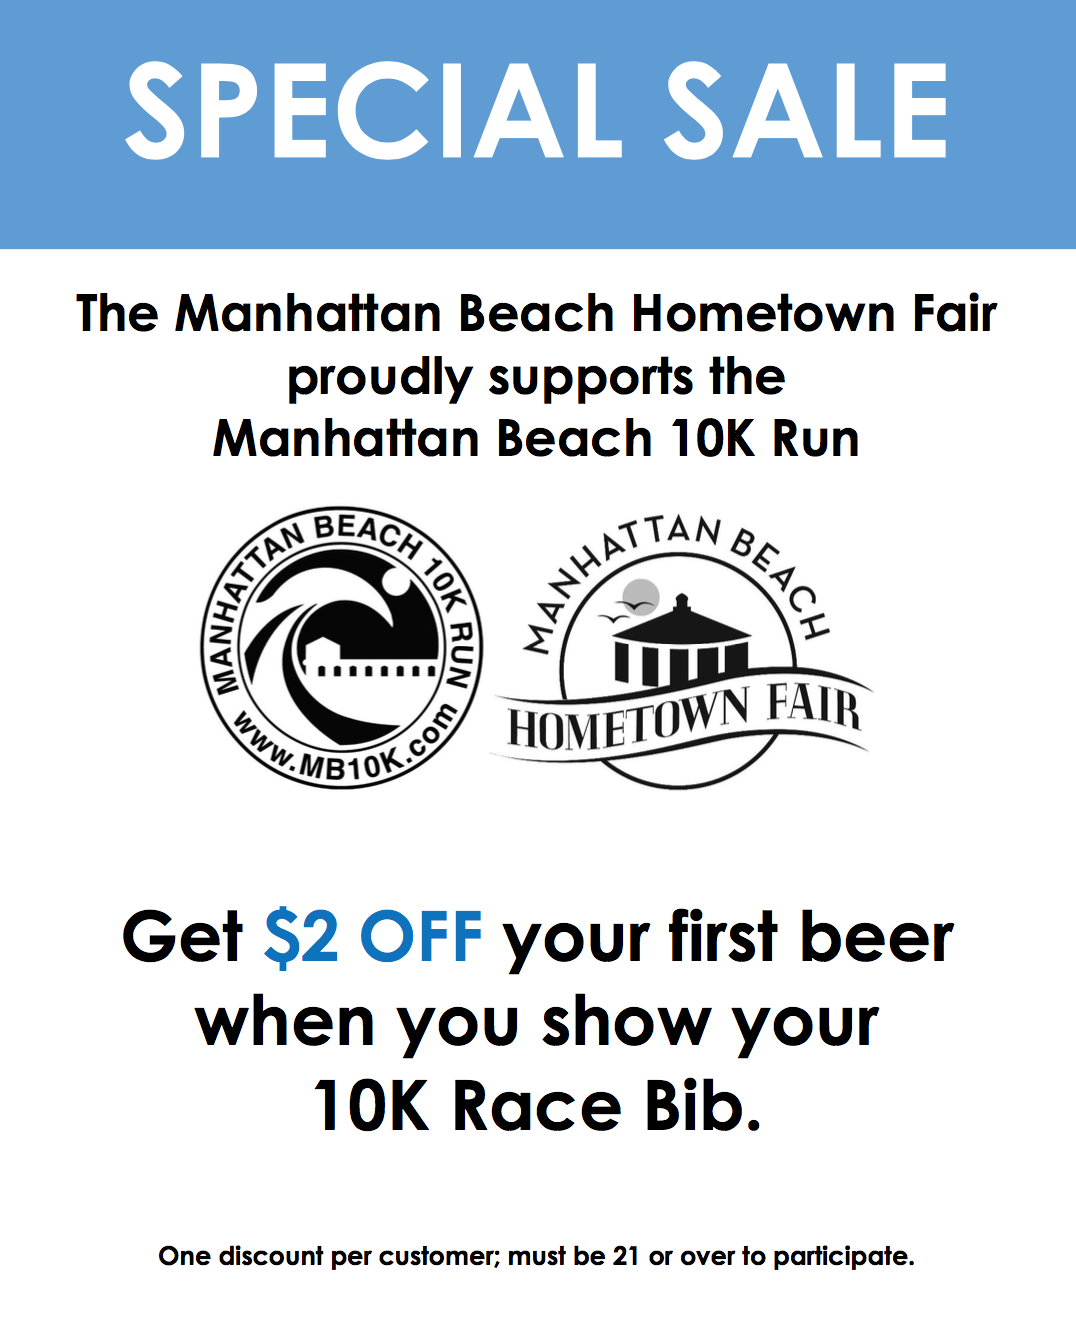 MB Hometown Fair MB10k Bib promo